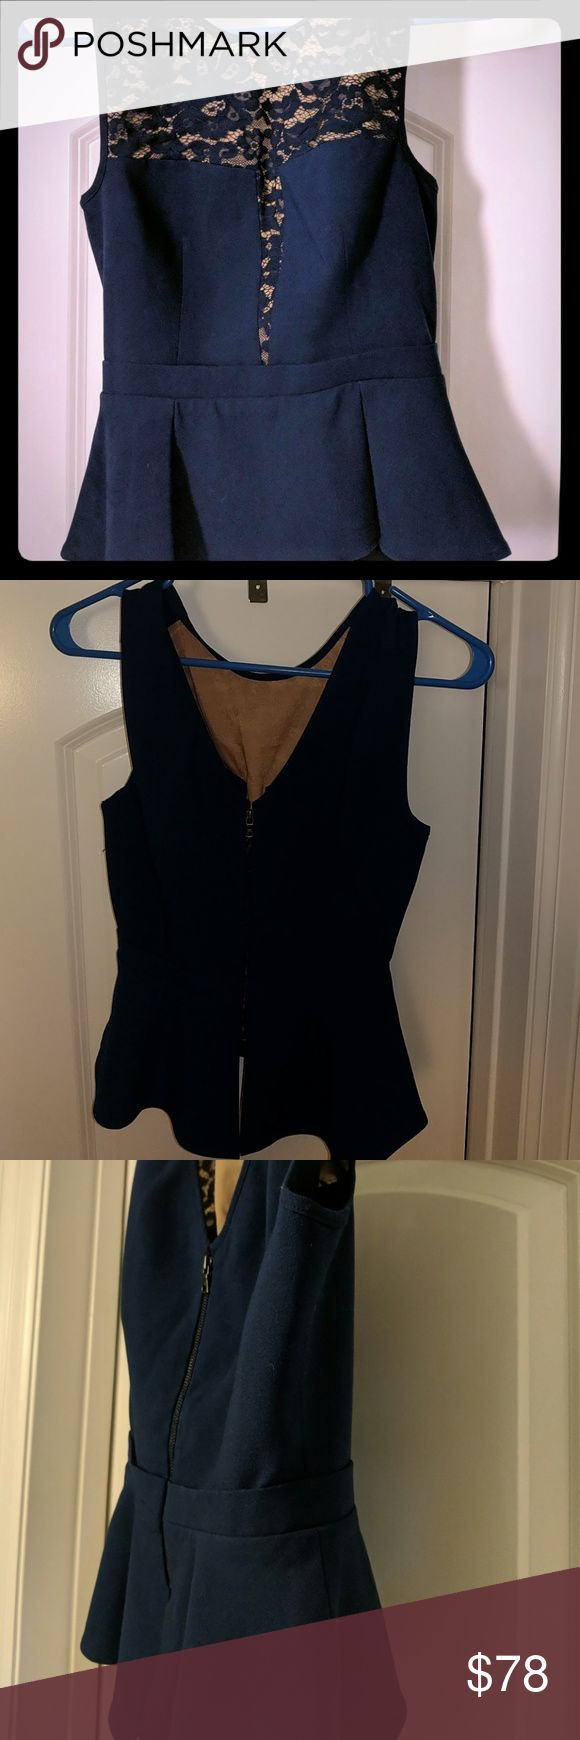 BCBG blouse Blue blouse. V-neck back. Zips up in back. Tighter on top with loose pleated bottom. BCBGMaxAzria Tops Blouses